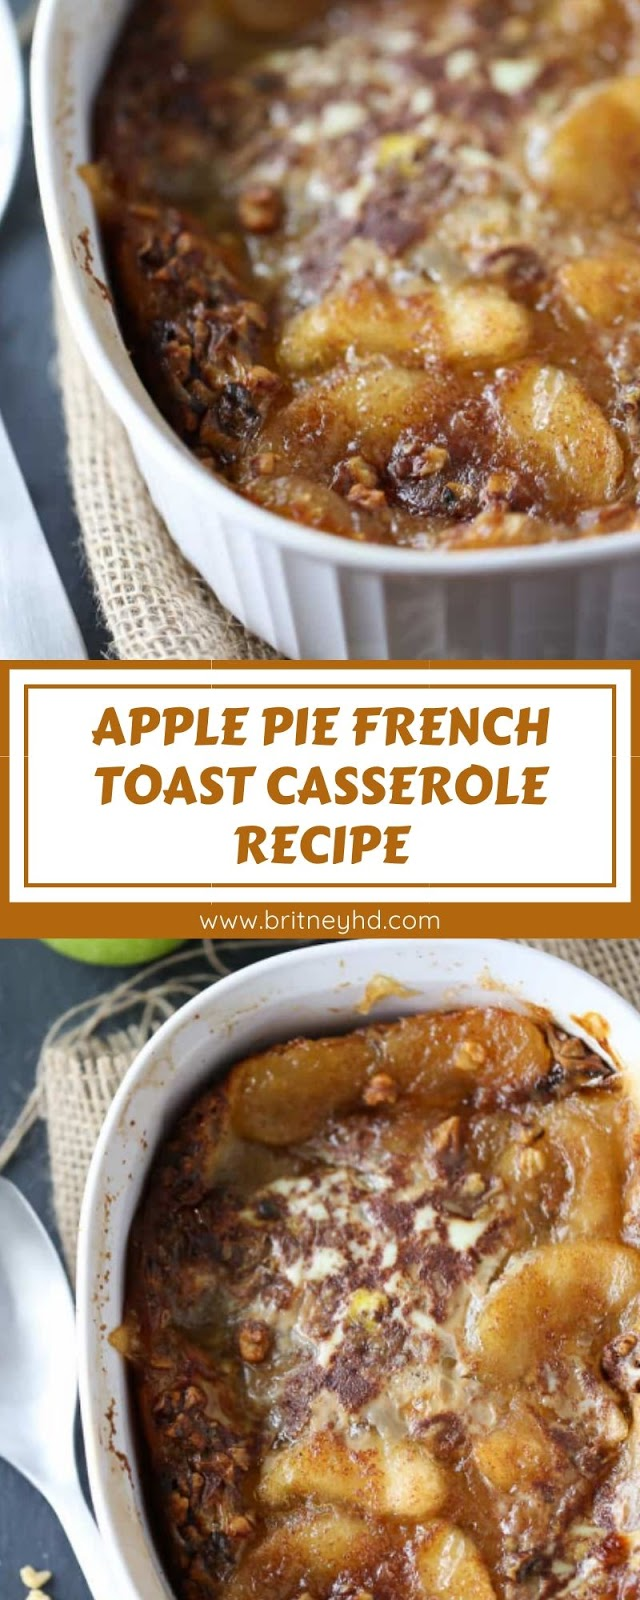 APPLE PIE FRENCH TOAST CASSEROLE RECIPE